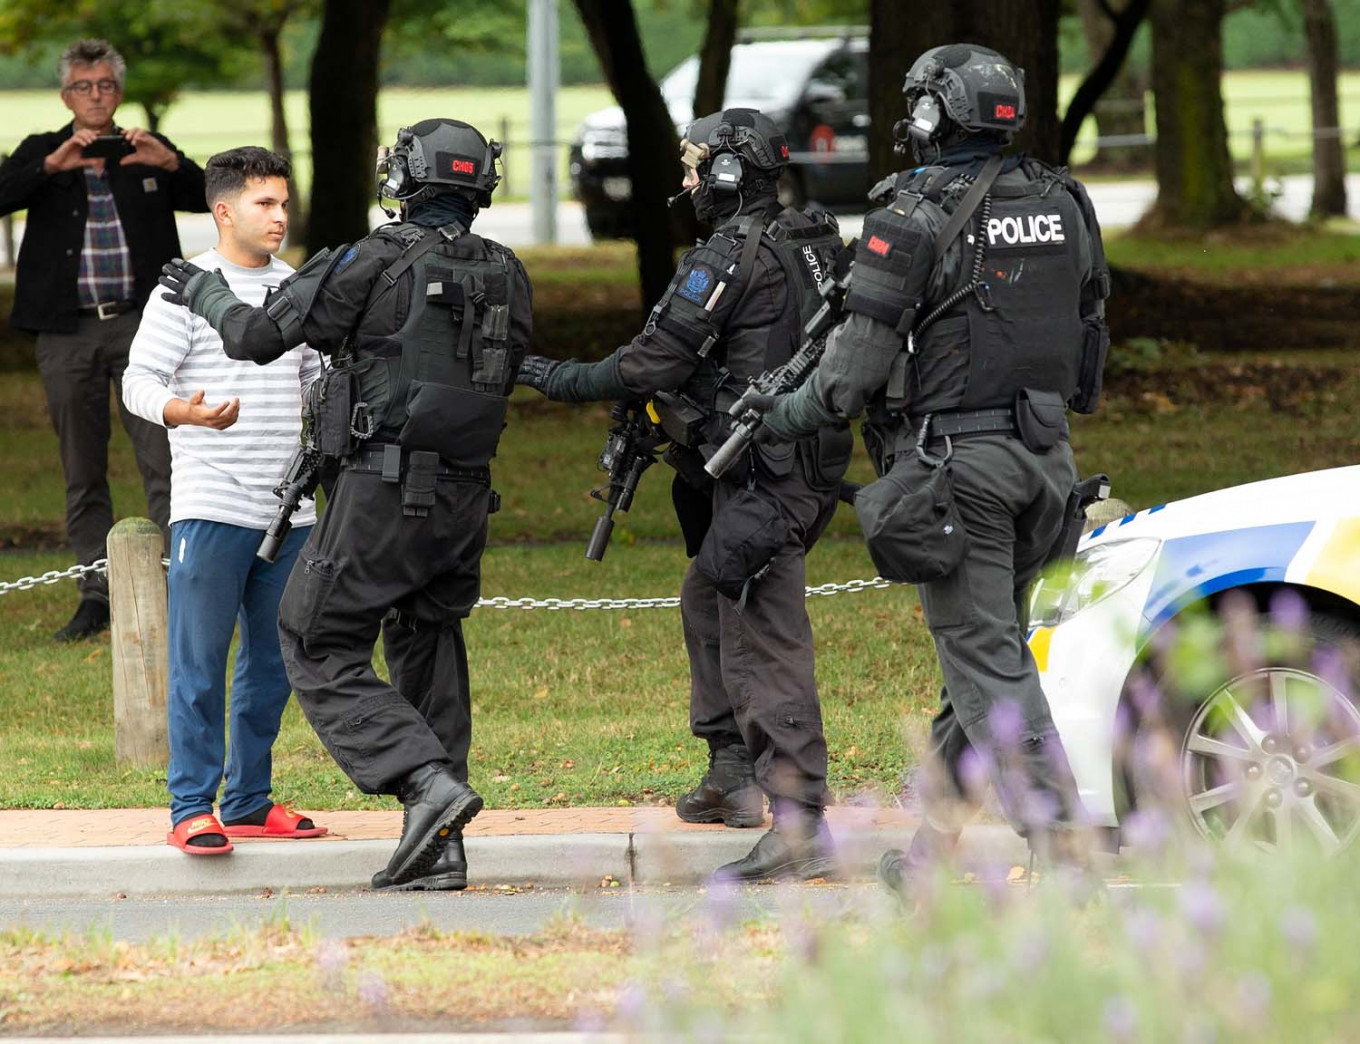 Families can counter terrorism